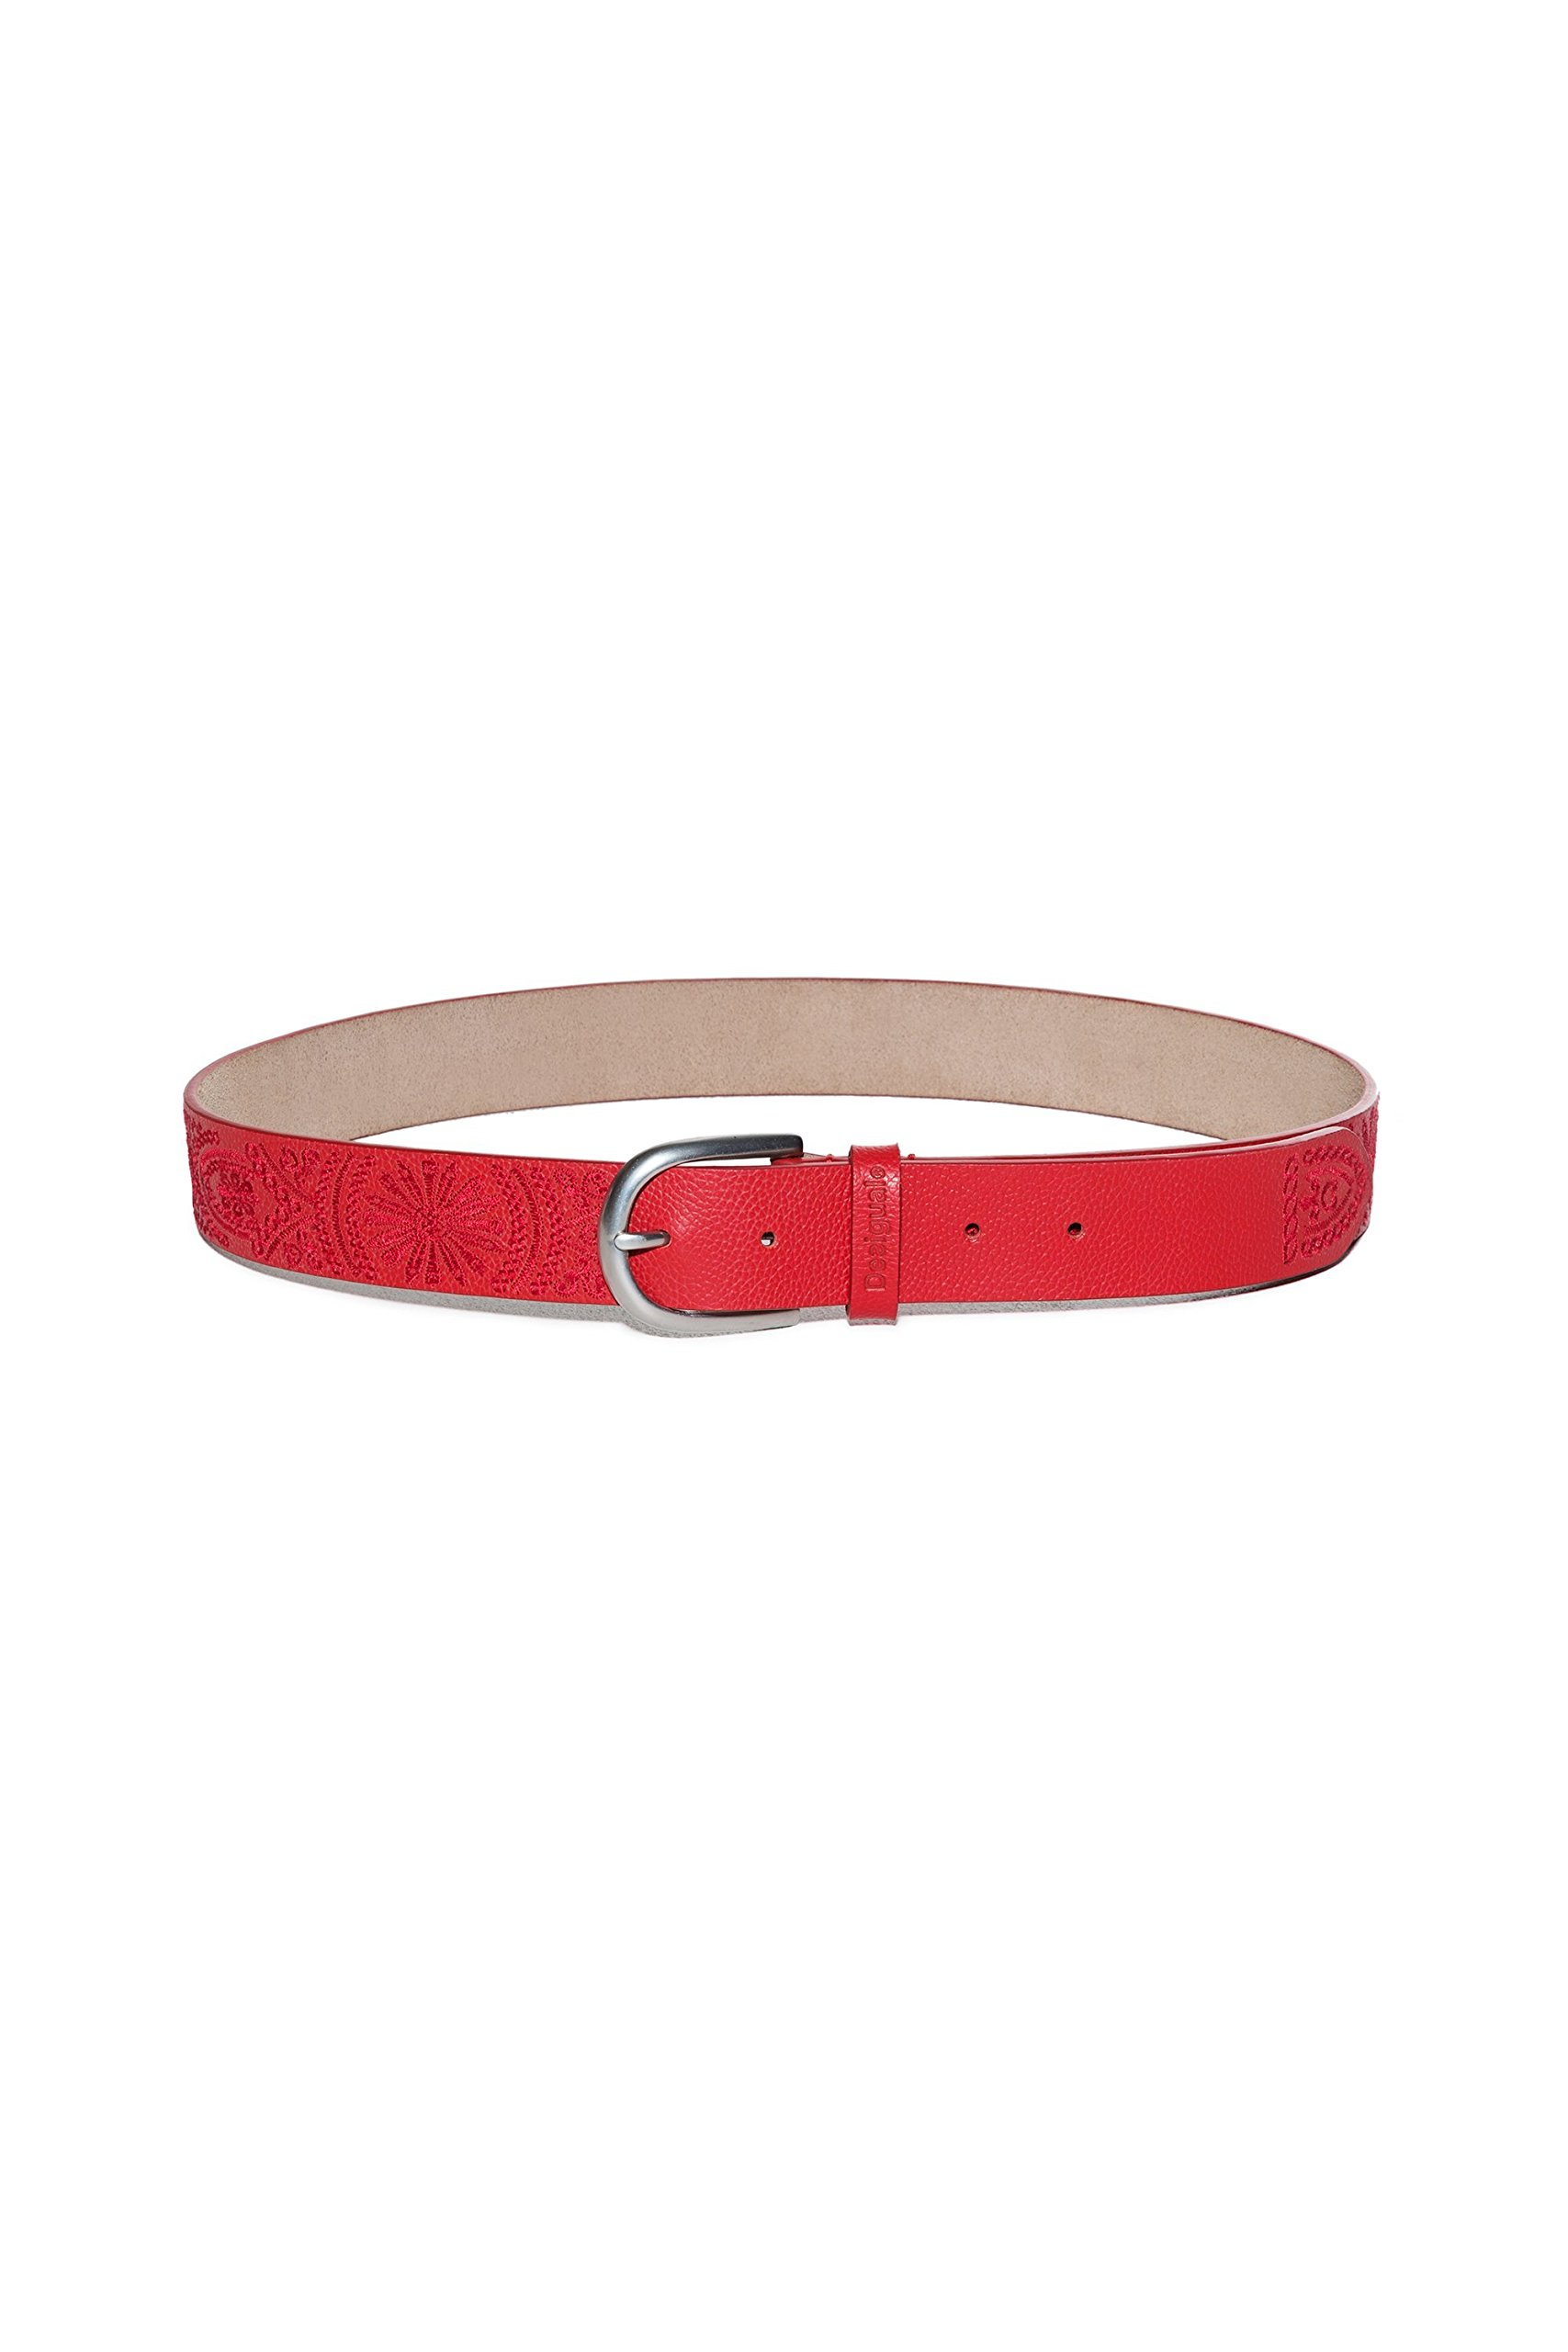 Desigual Women's 18Sarl02red Red Leather Belt